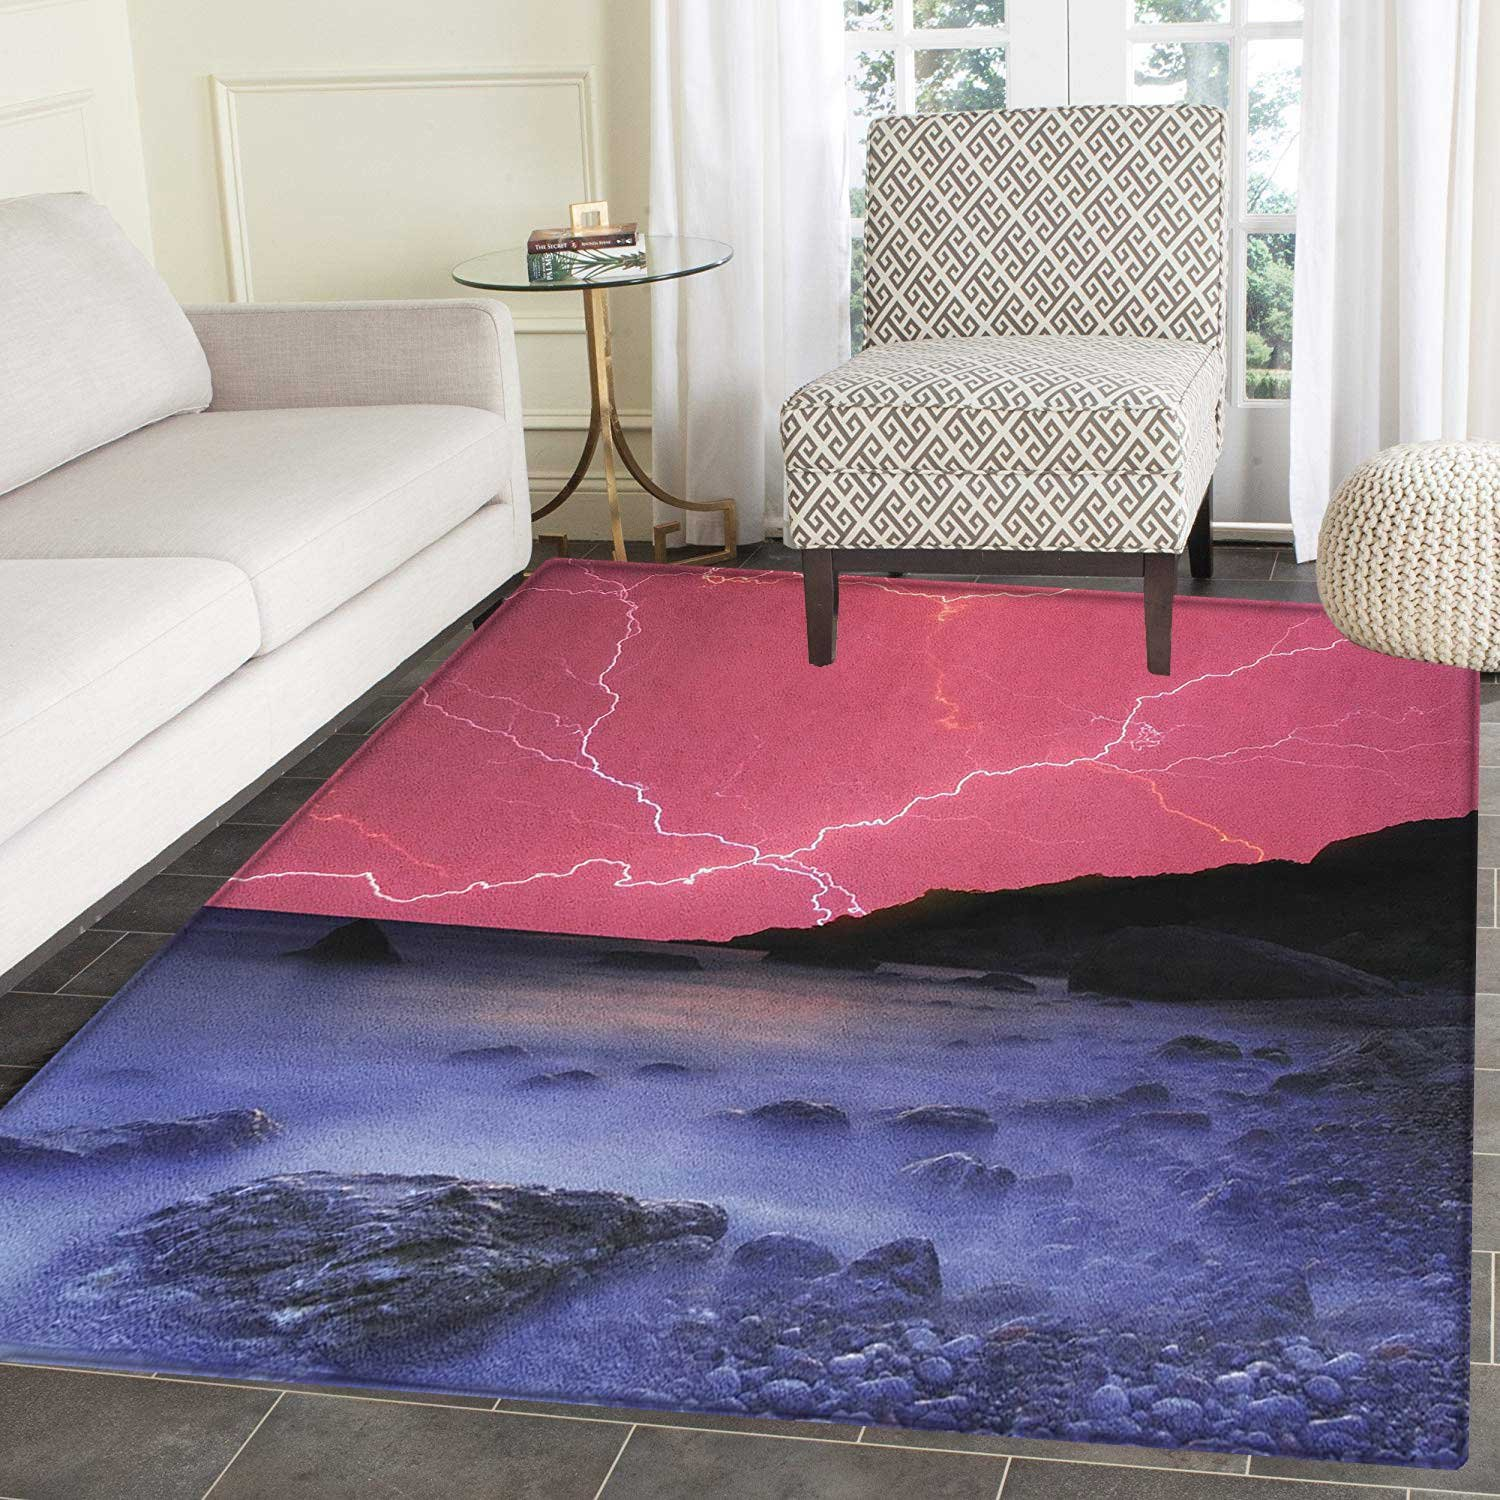 Nature Anti-Skid Area Rug Thunderstorm Bolts with Vibrant Colorful Sky Like Solar Phenomenal Nature Picture Door Mat Increase 4'x5' Pink Grey